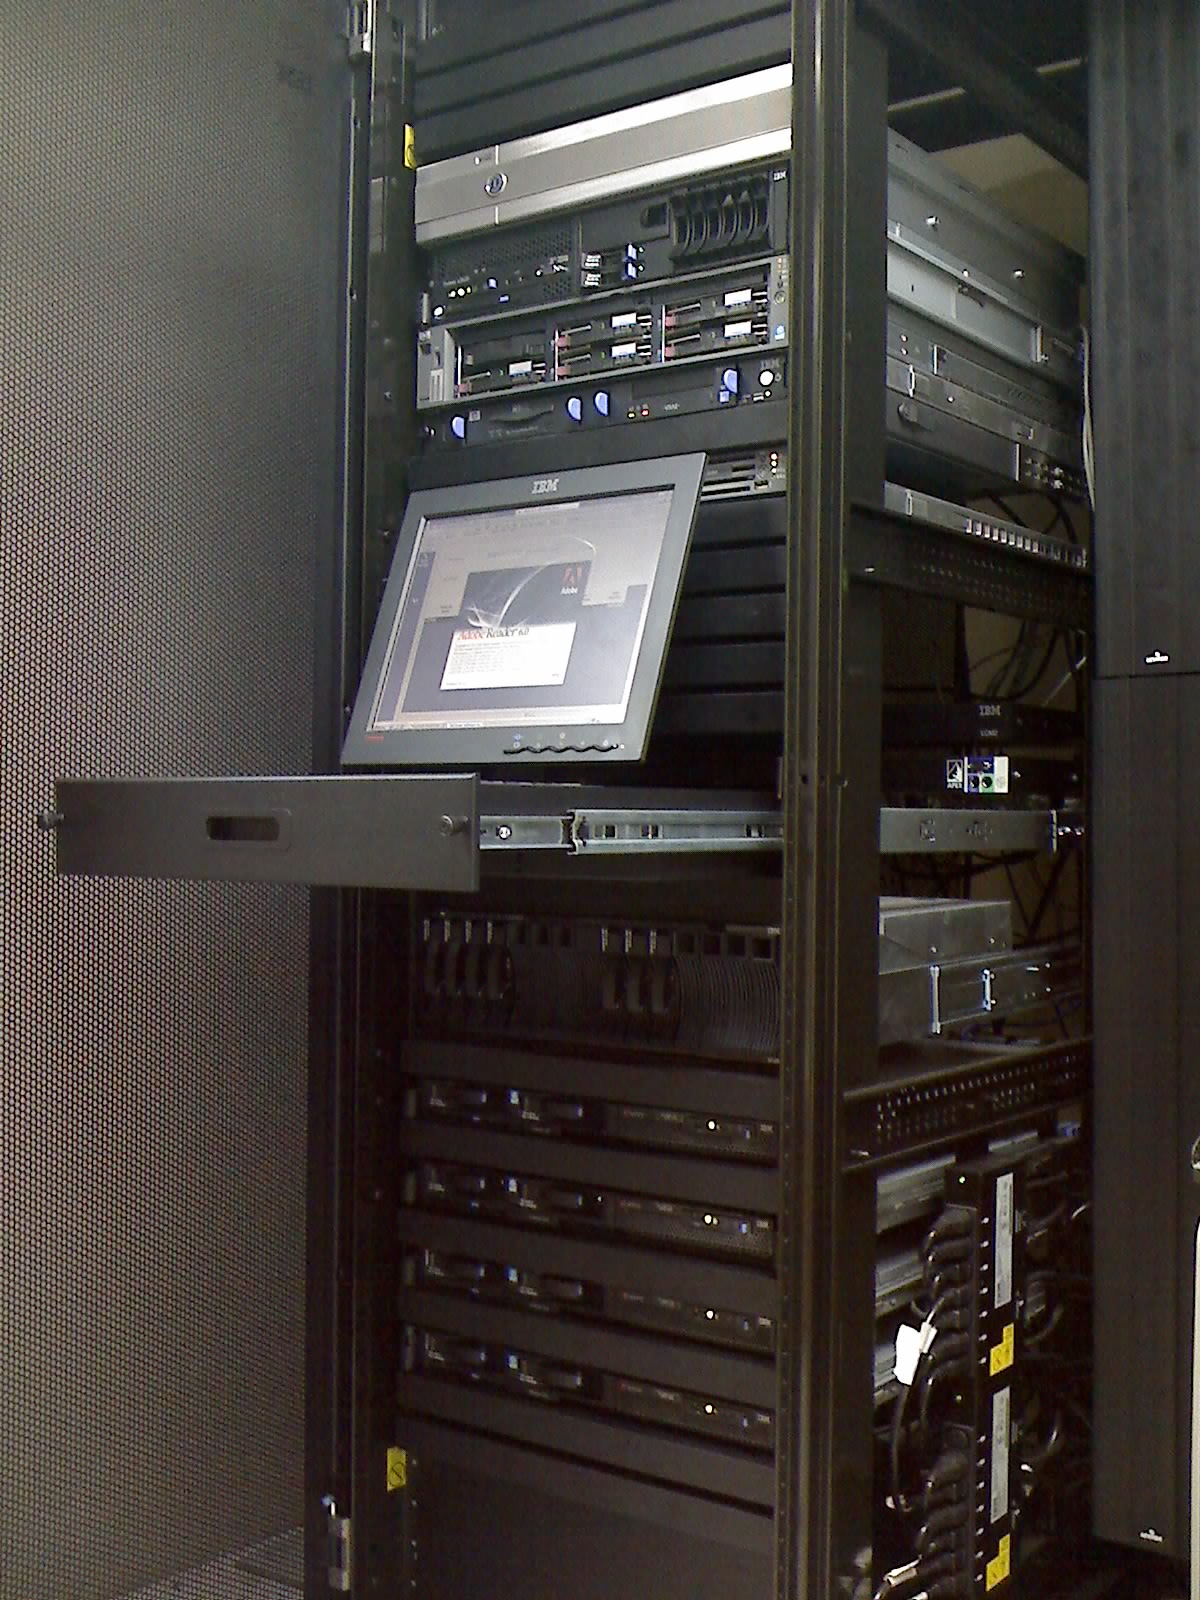 A typical server rack